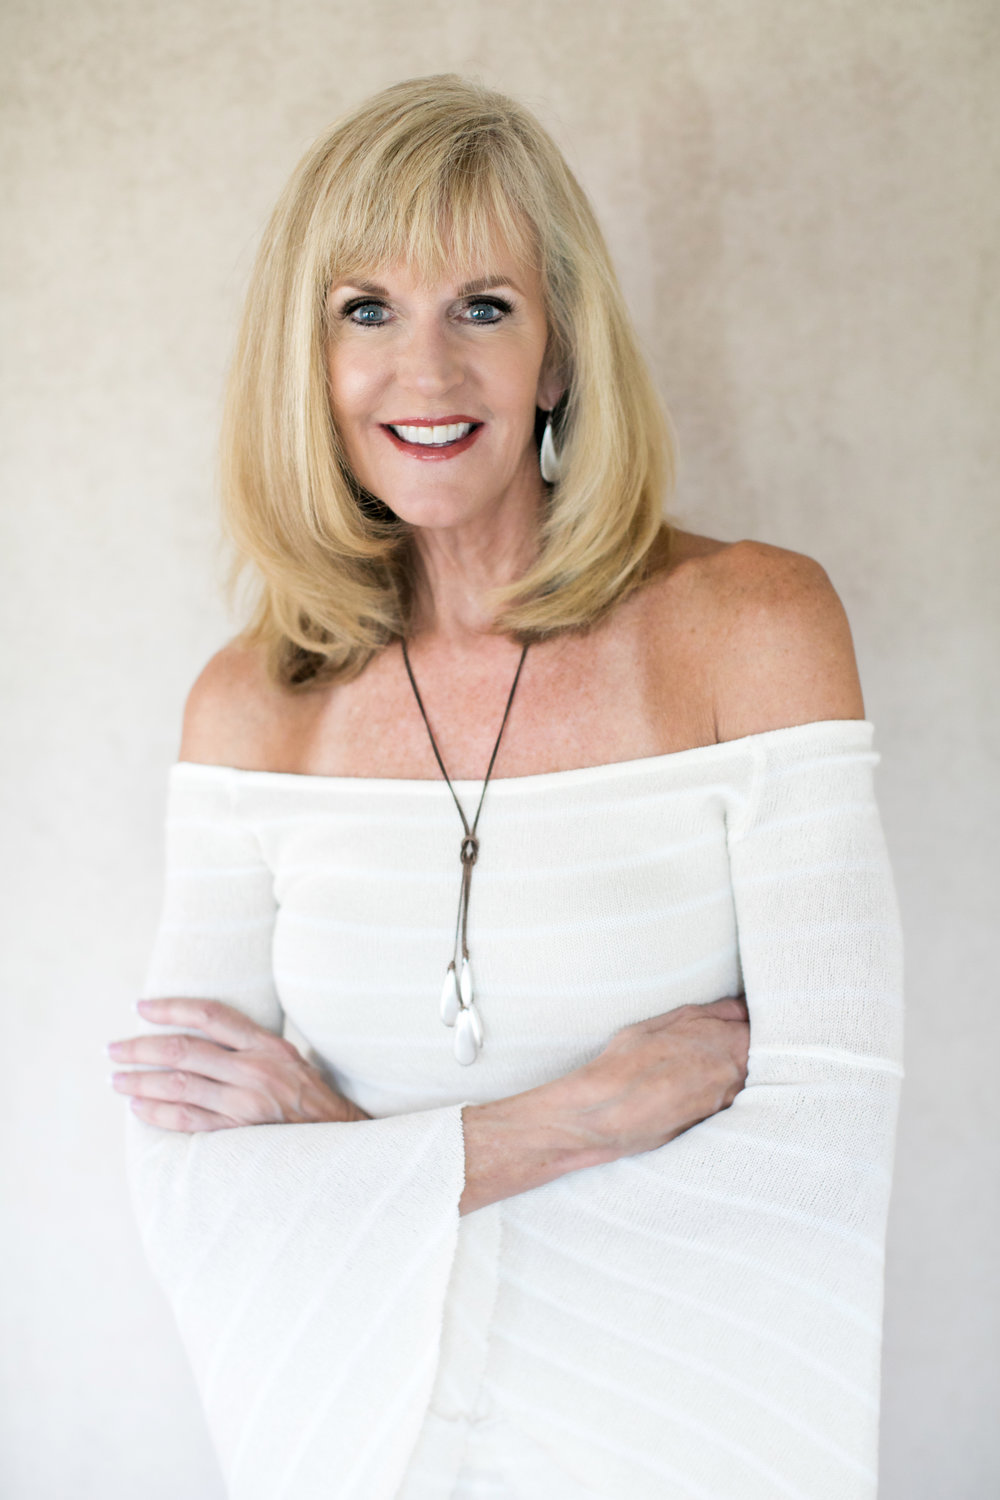 What You Receive: - As one of my '50 OVER 50' women, you will receive a wonderful package which includes:• Pre-consultation with me to discuss how you want to be photographed including a style consultation.• Hair and makeup on the day of the photo shoot (you will feel amazing!)• Fully guided professional photo shoot that you will truly enjoy.• A reviewing session where you can see all your beautiful photographs.•Invitation to the '50 OVER 50′ exhibition where you will see your portrait hung alongside all the other participants… and have the opportunity to meet each other as well!Other conditions may apply.I am offering the 50 OVER 50 special promotion package for just $350 +tax. The total value is $690.The project will be promoted in many ways so you'll need to be happy with…•Being interviewed by me before and after the photoshoot about being a woman over 50. This may include video interviews.•That interview being shared on my website and social media.•Before and After makeover photos to be shown.•Your photo being displayed at the exhibition.I will keep in touch with all participants throughout the project with updates, insights and information.